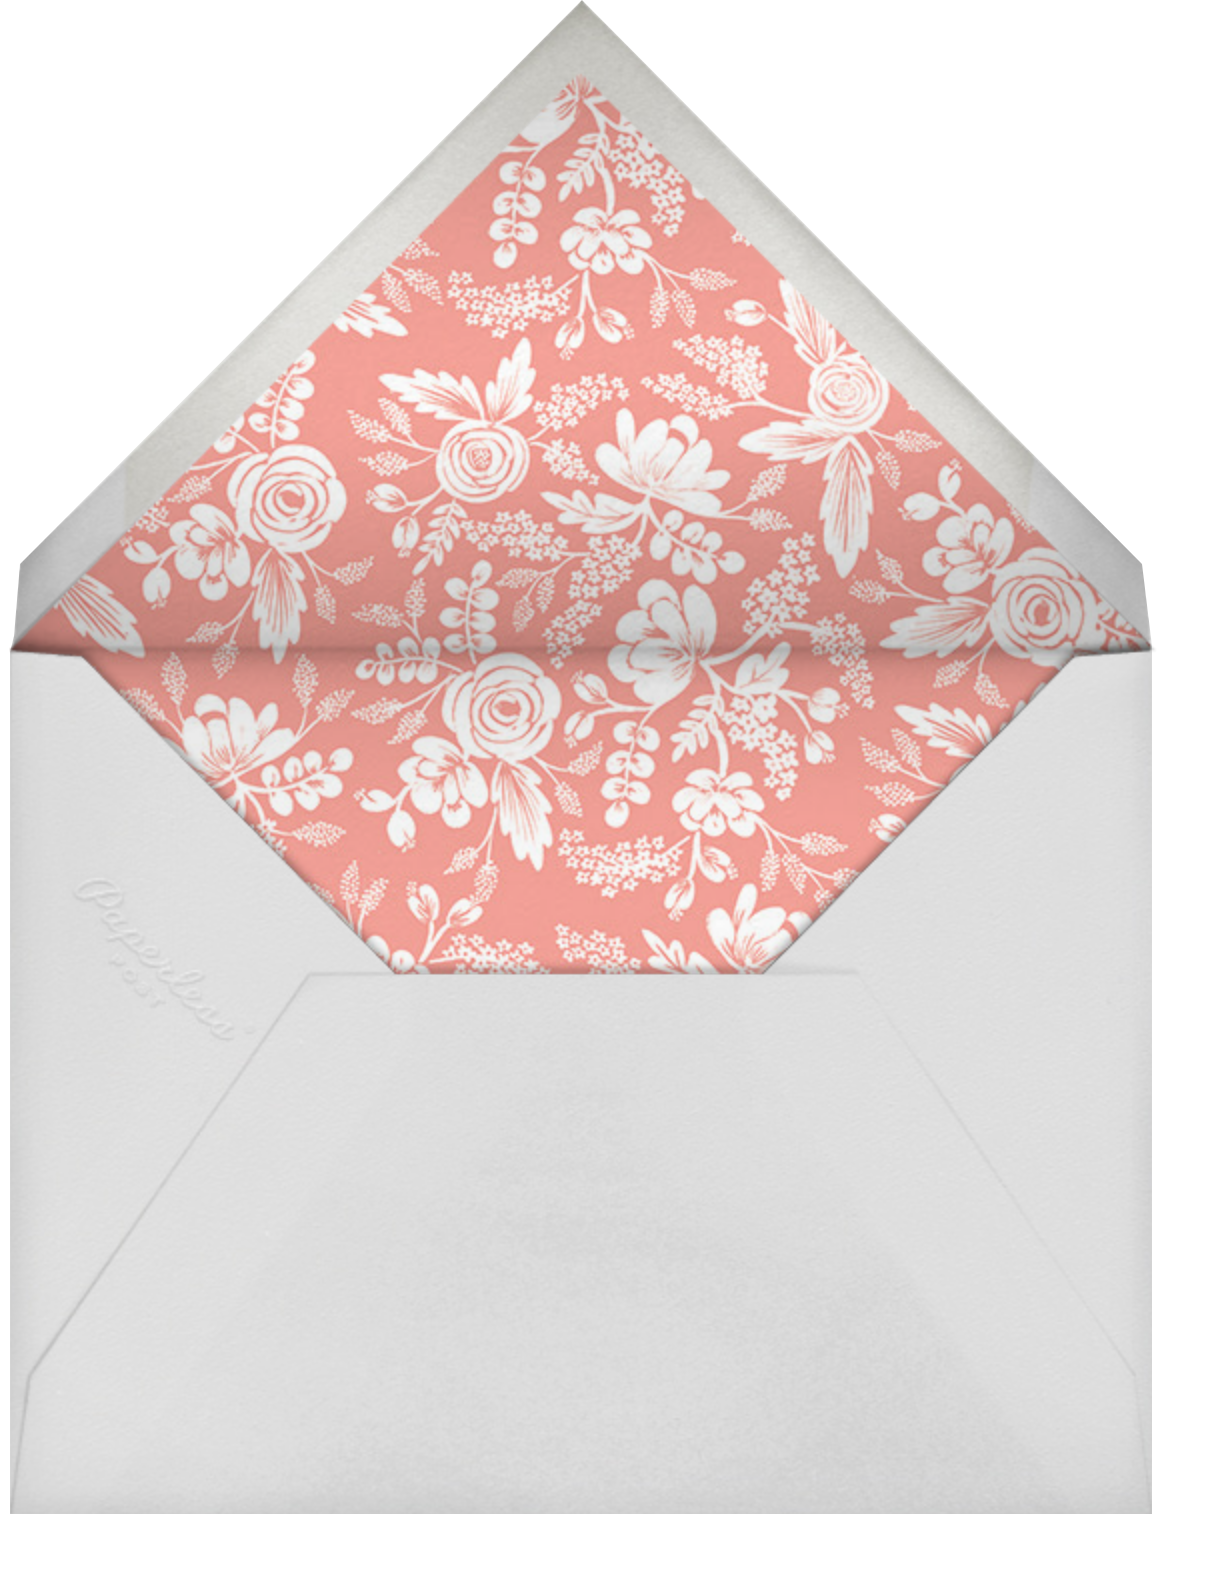 Heather and Lace (Square) - Silver - Rifle Paper Co. - Anniversary party - envelope back